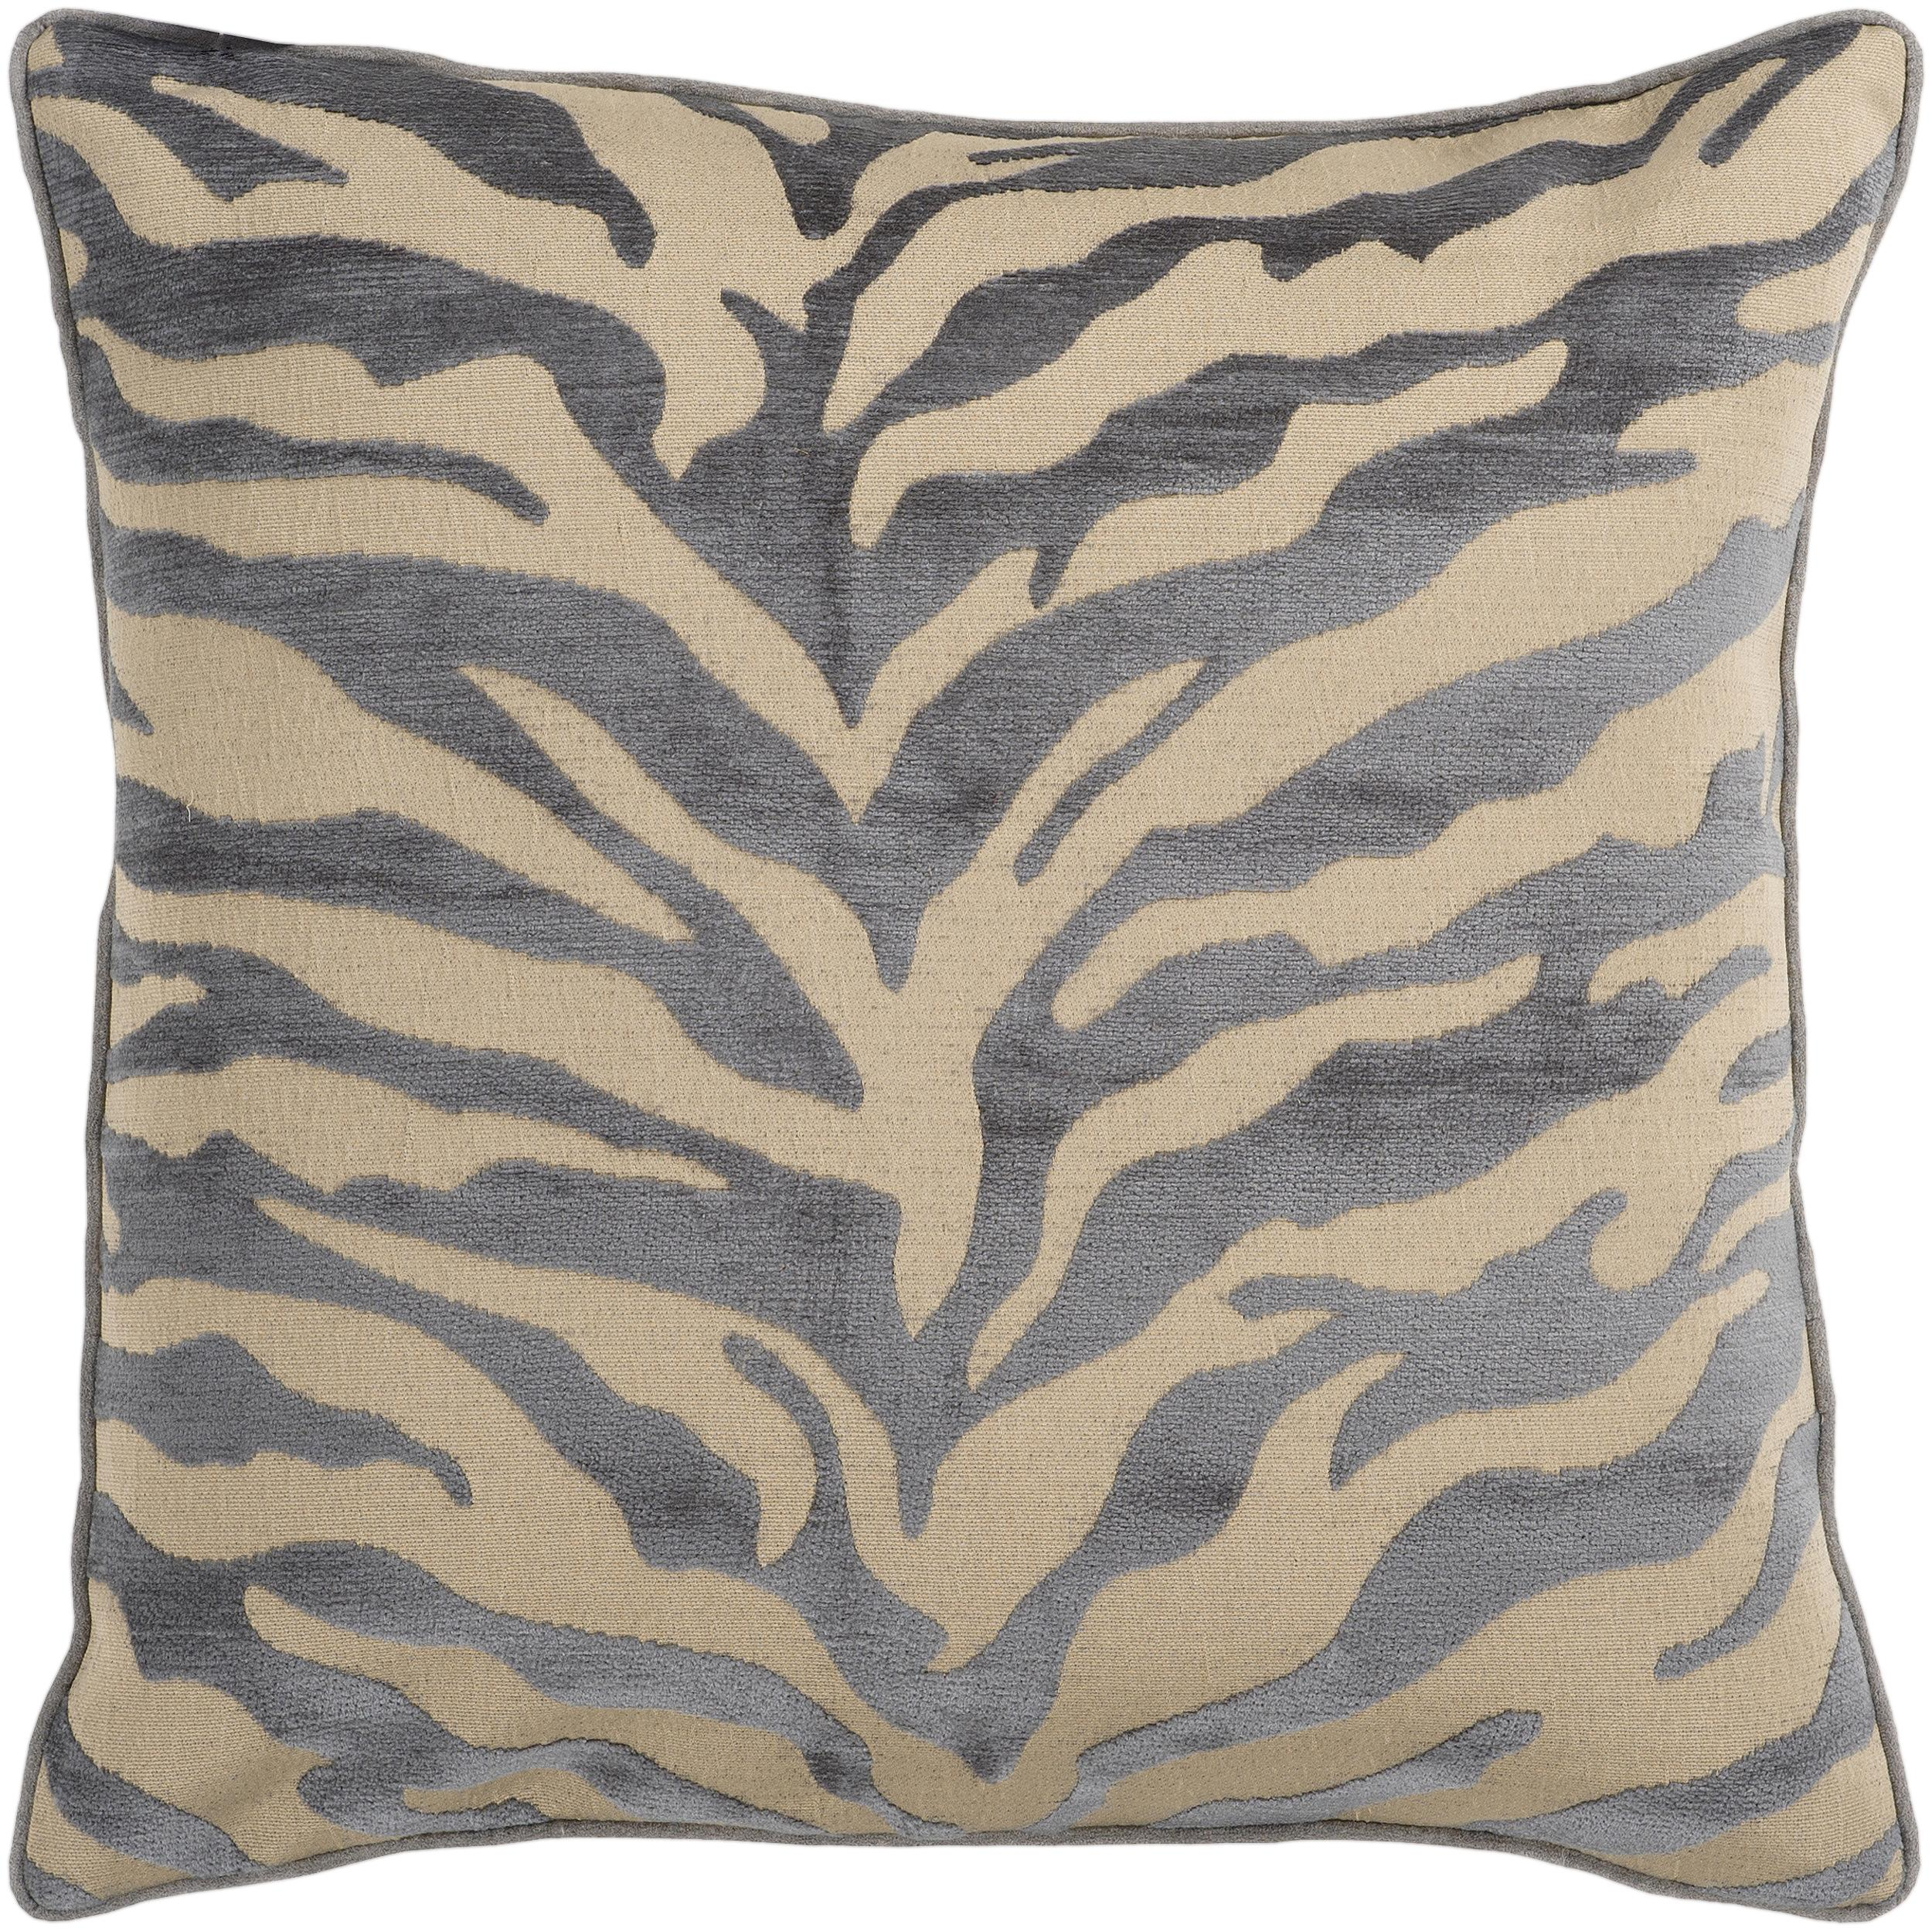 "Surya Pillows 18"" x 18"" Pillow - Item Number: JS032-1818P"